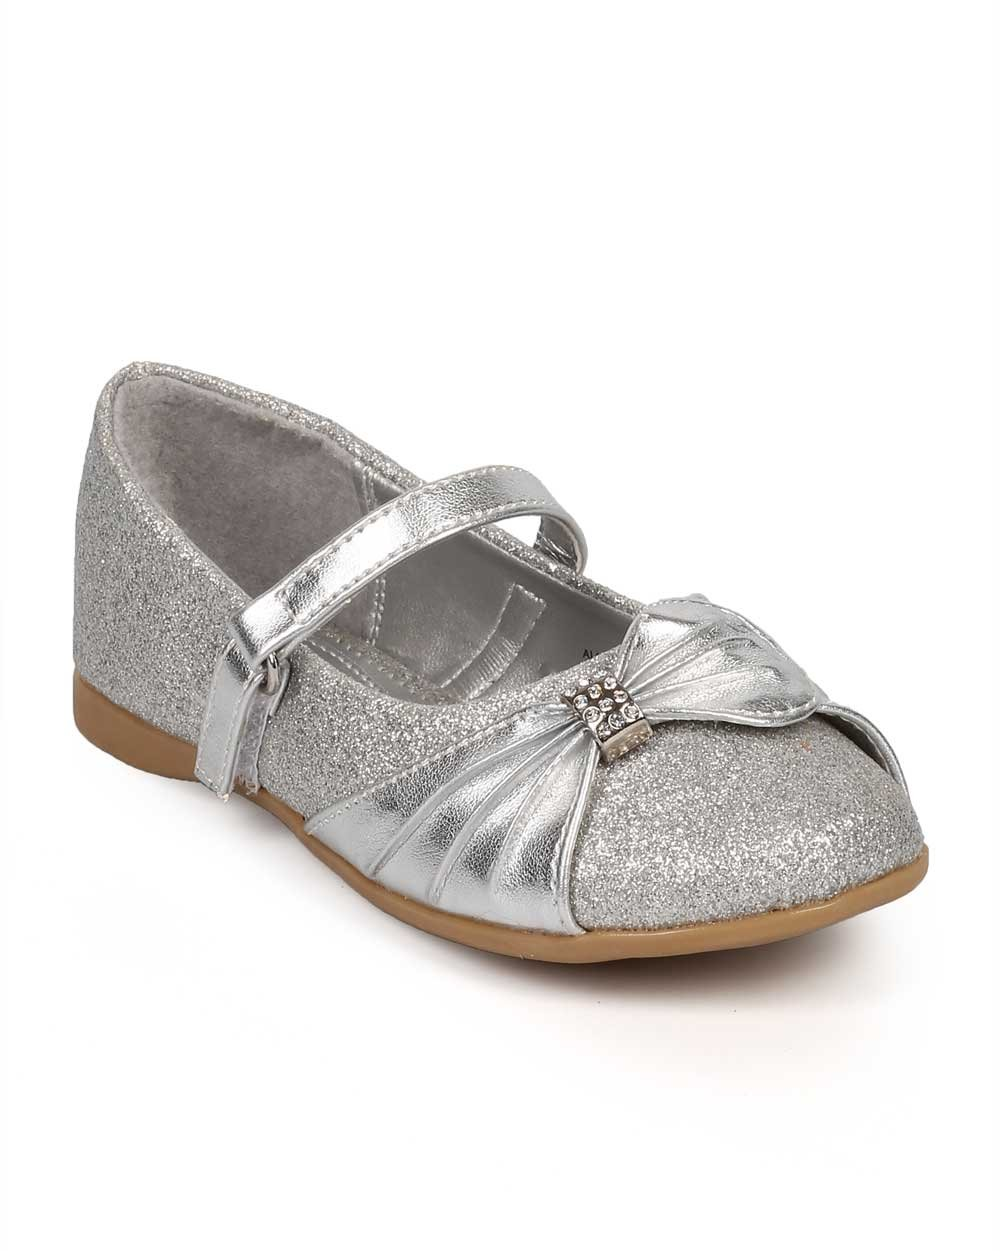 Little Angel Girl Glitter Round Toe Rhinestone Bow Mary Jane Flat (Toddler) DF70 - Silver (Size: Toddler 4)